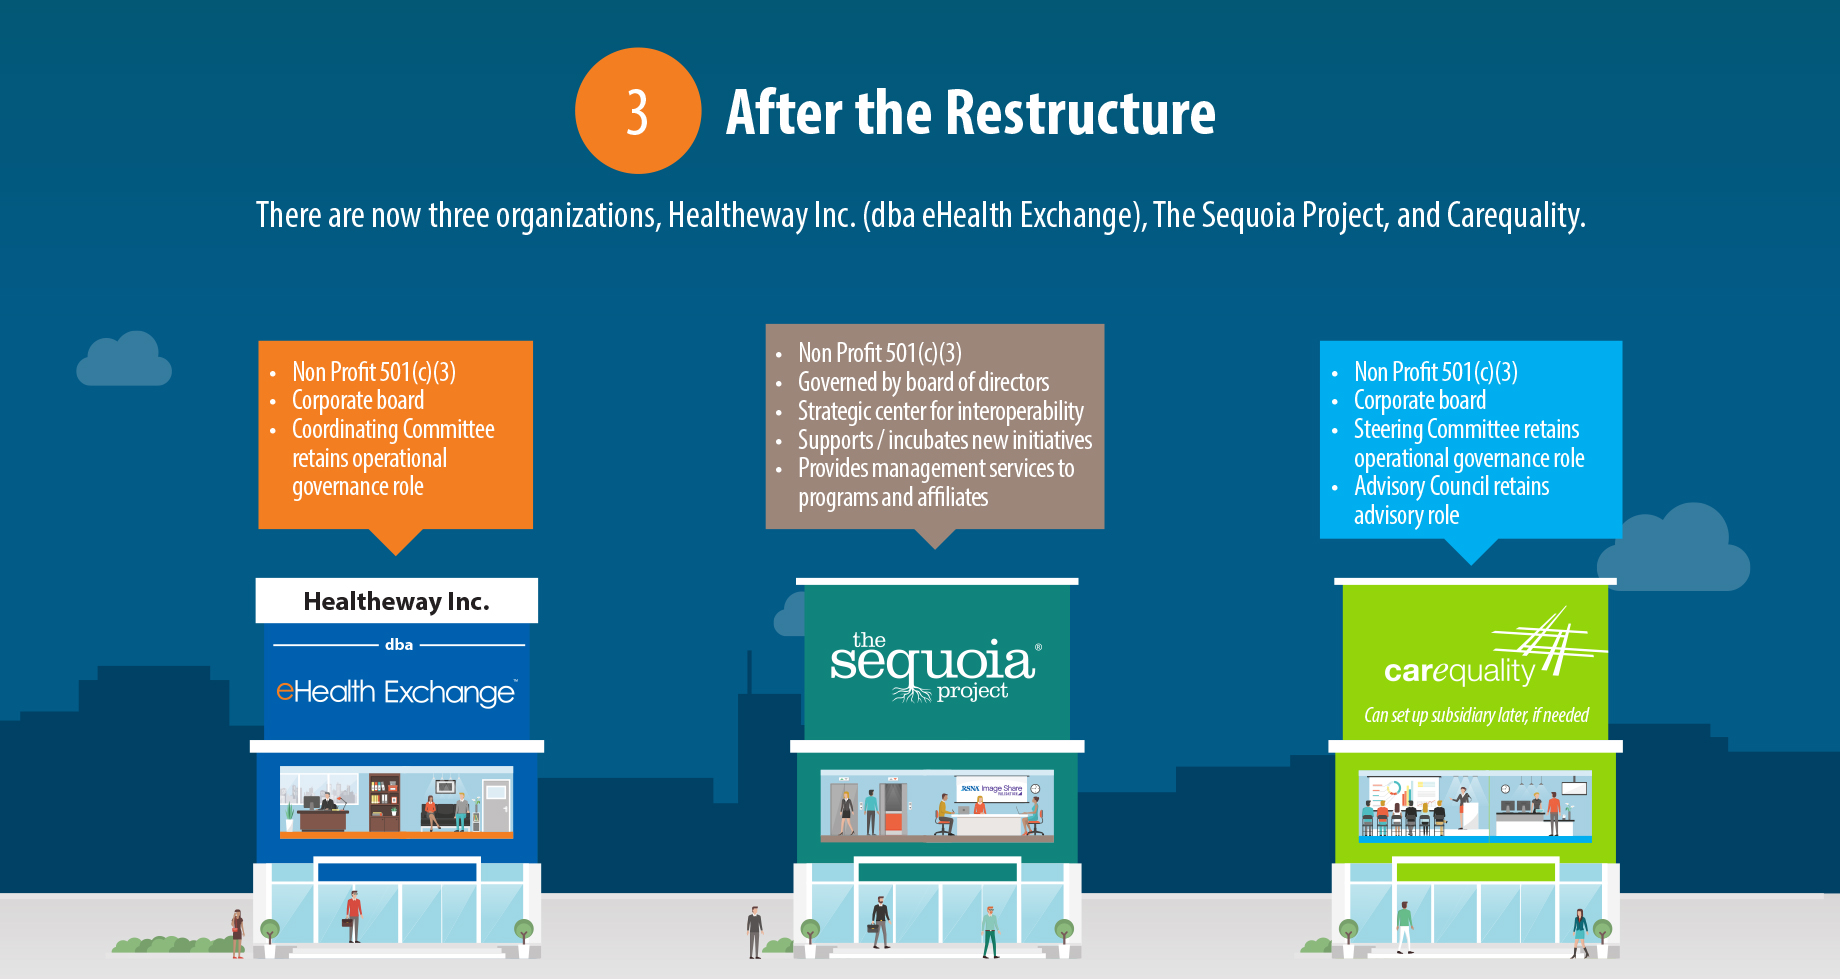 Restructure - The Sequoia Project